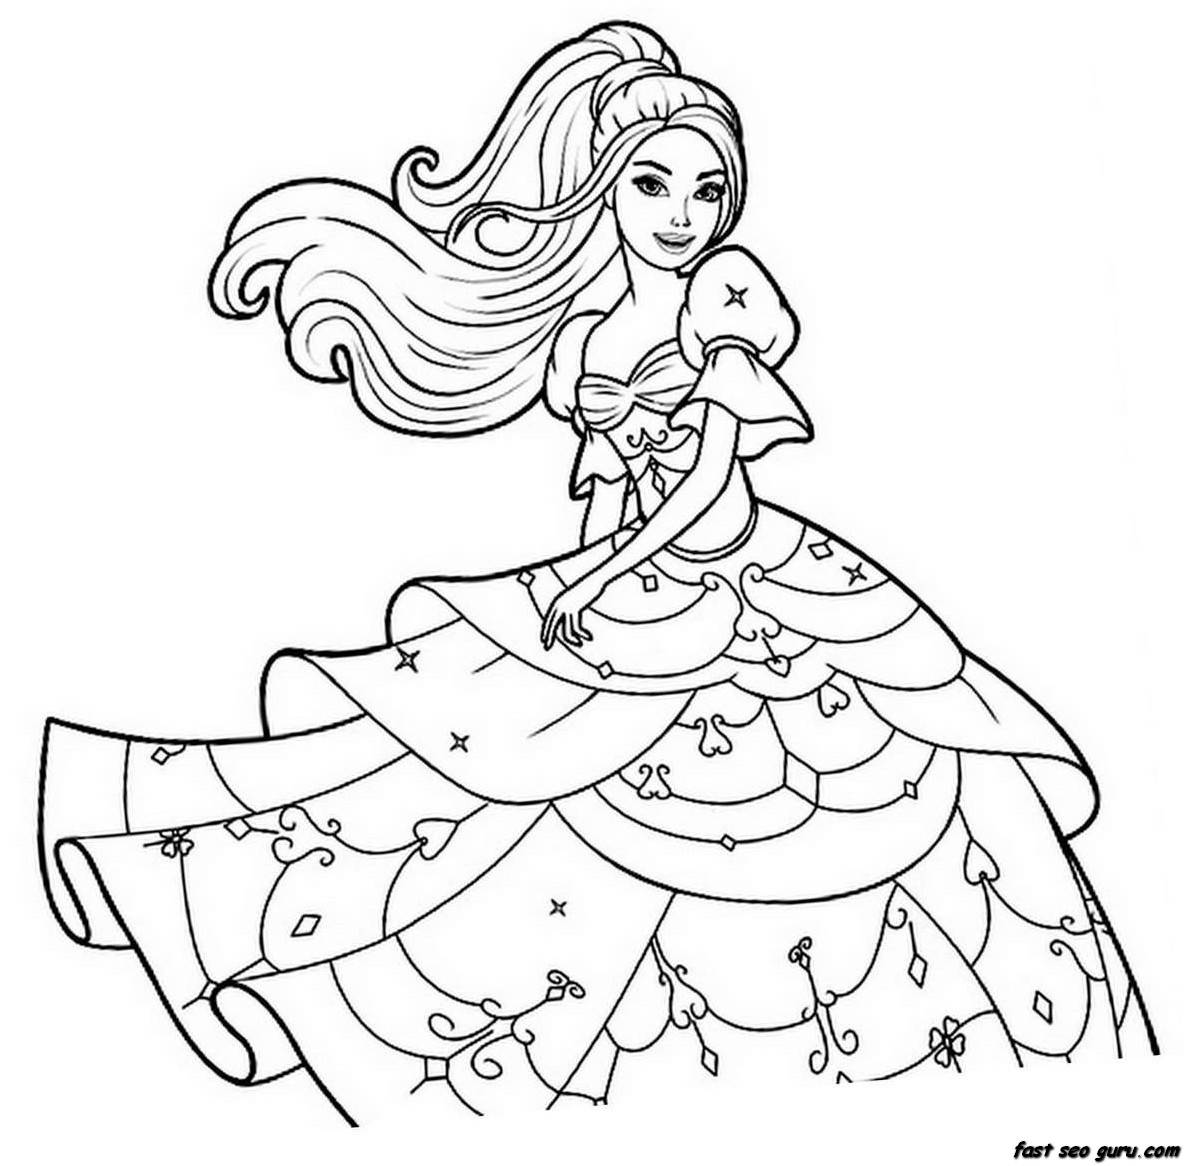 coloring sheets for girls coloring pages for girls dr odd for coloring girls sheets